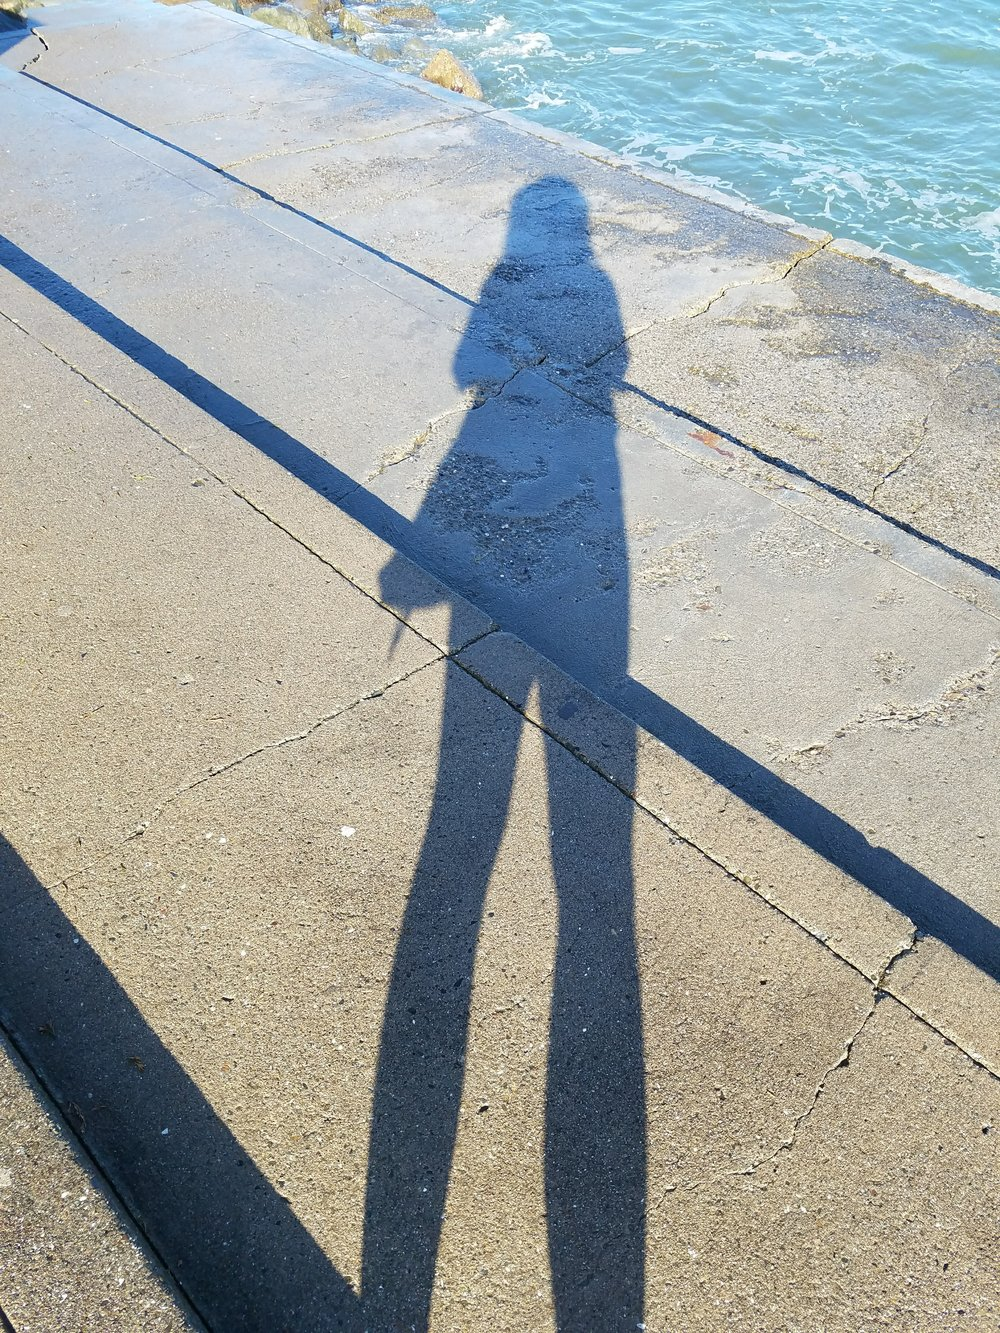 Just me and my shadow walking the line...